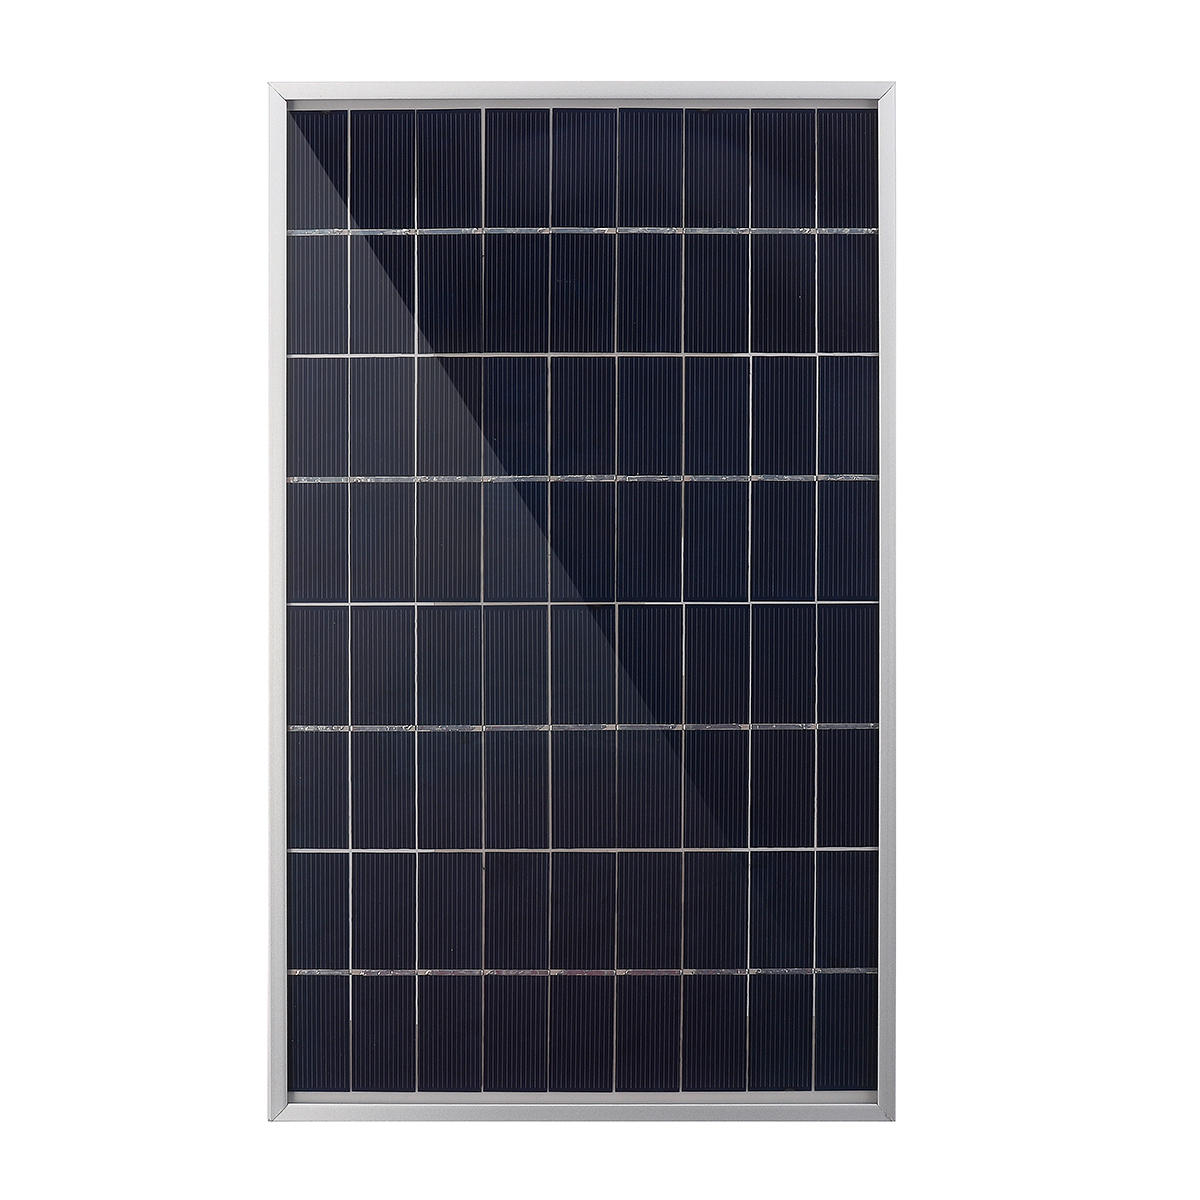 10W 12V Portable Solar Panel WIth Battery Clip + 40A Solar Controller Kit for Camping Traveling